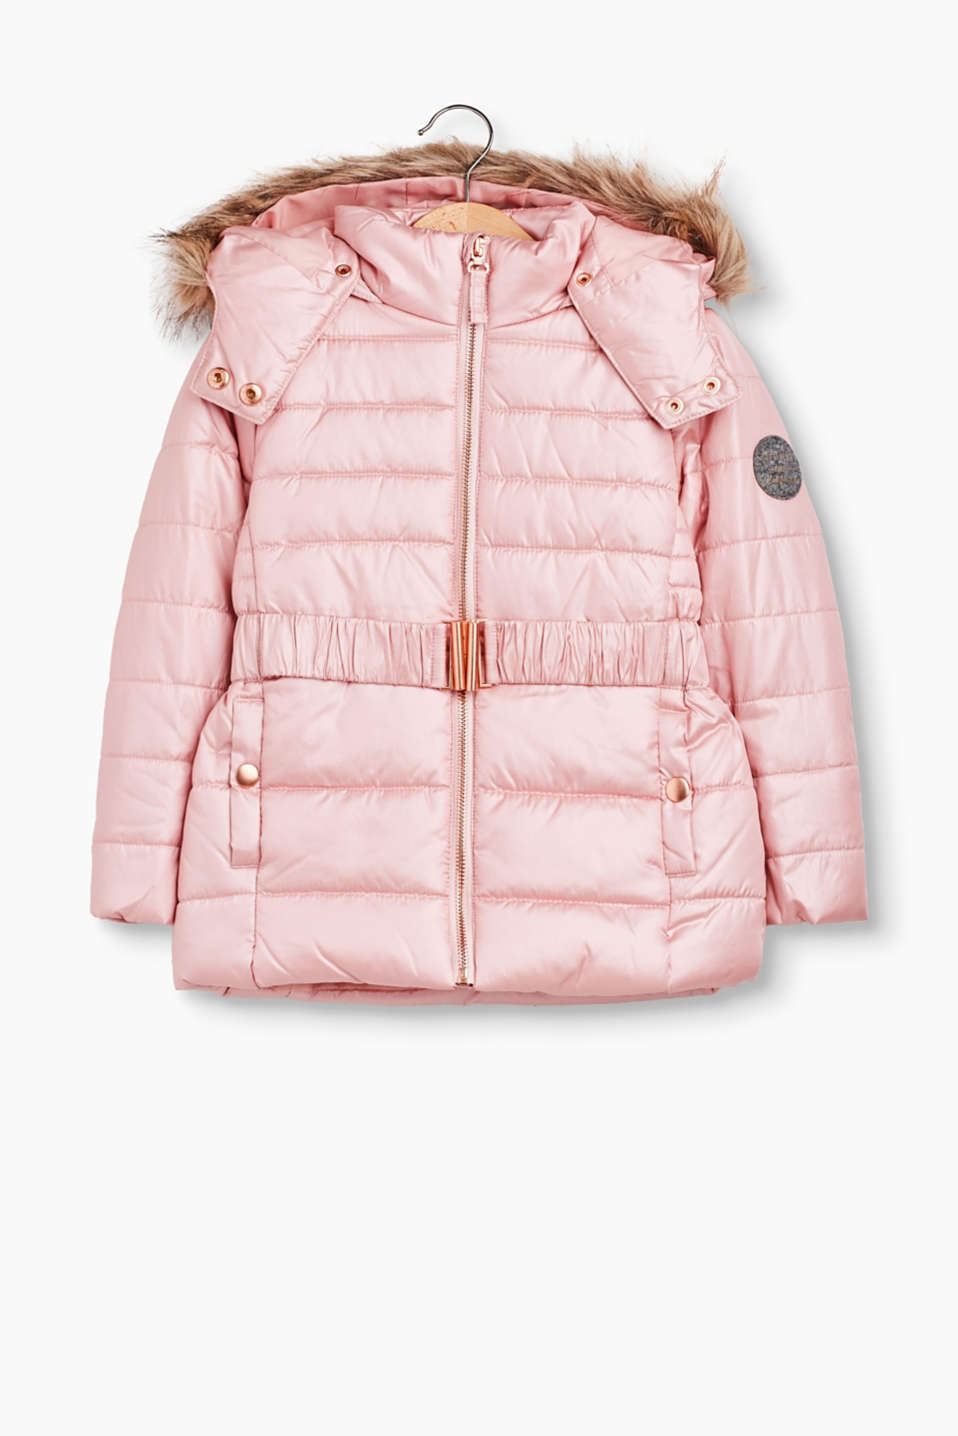 So chic and also super practical: warm, padded quilted jacket with a detachable faux fur hood and fleece lining